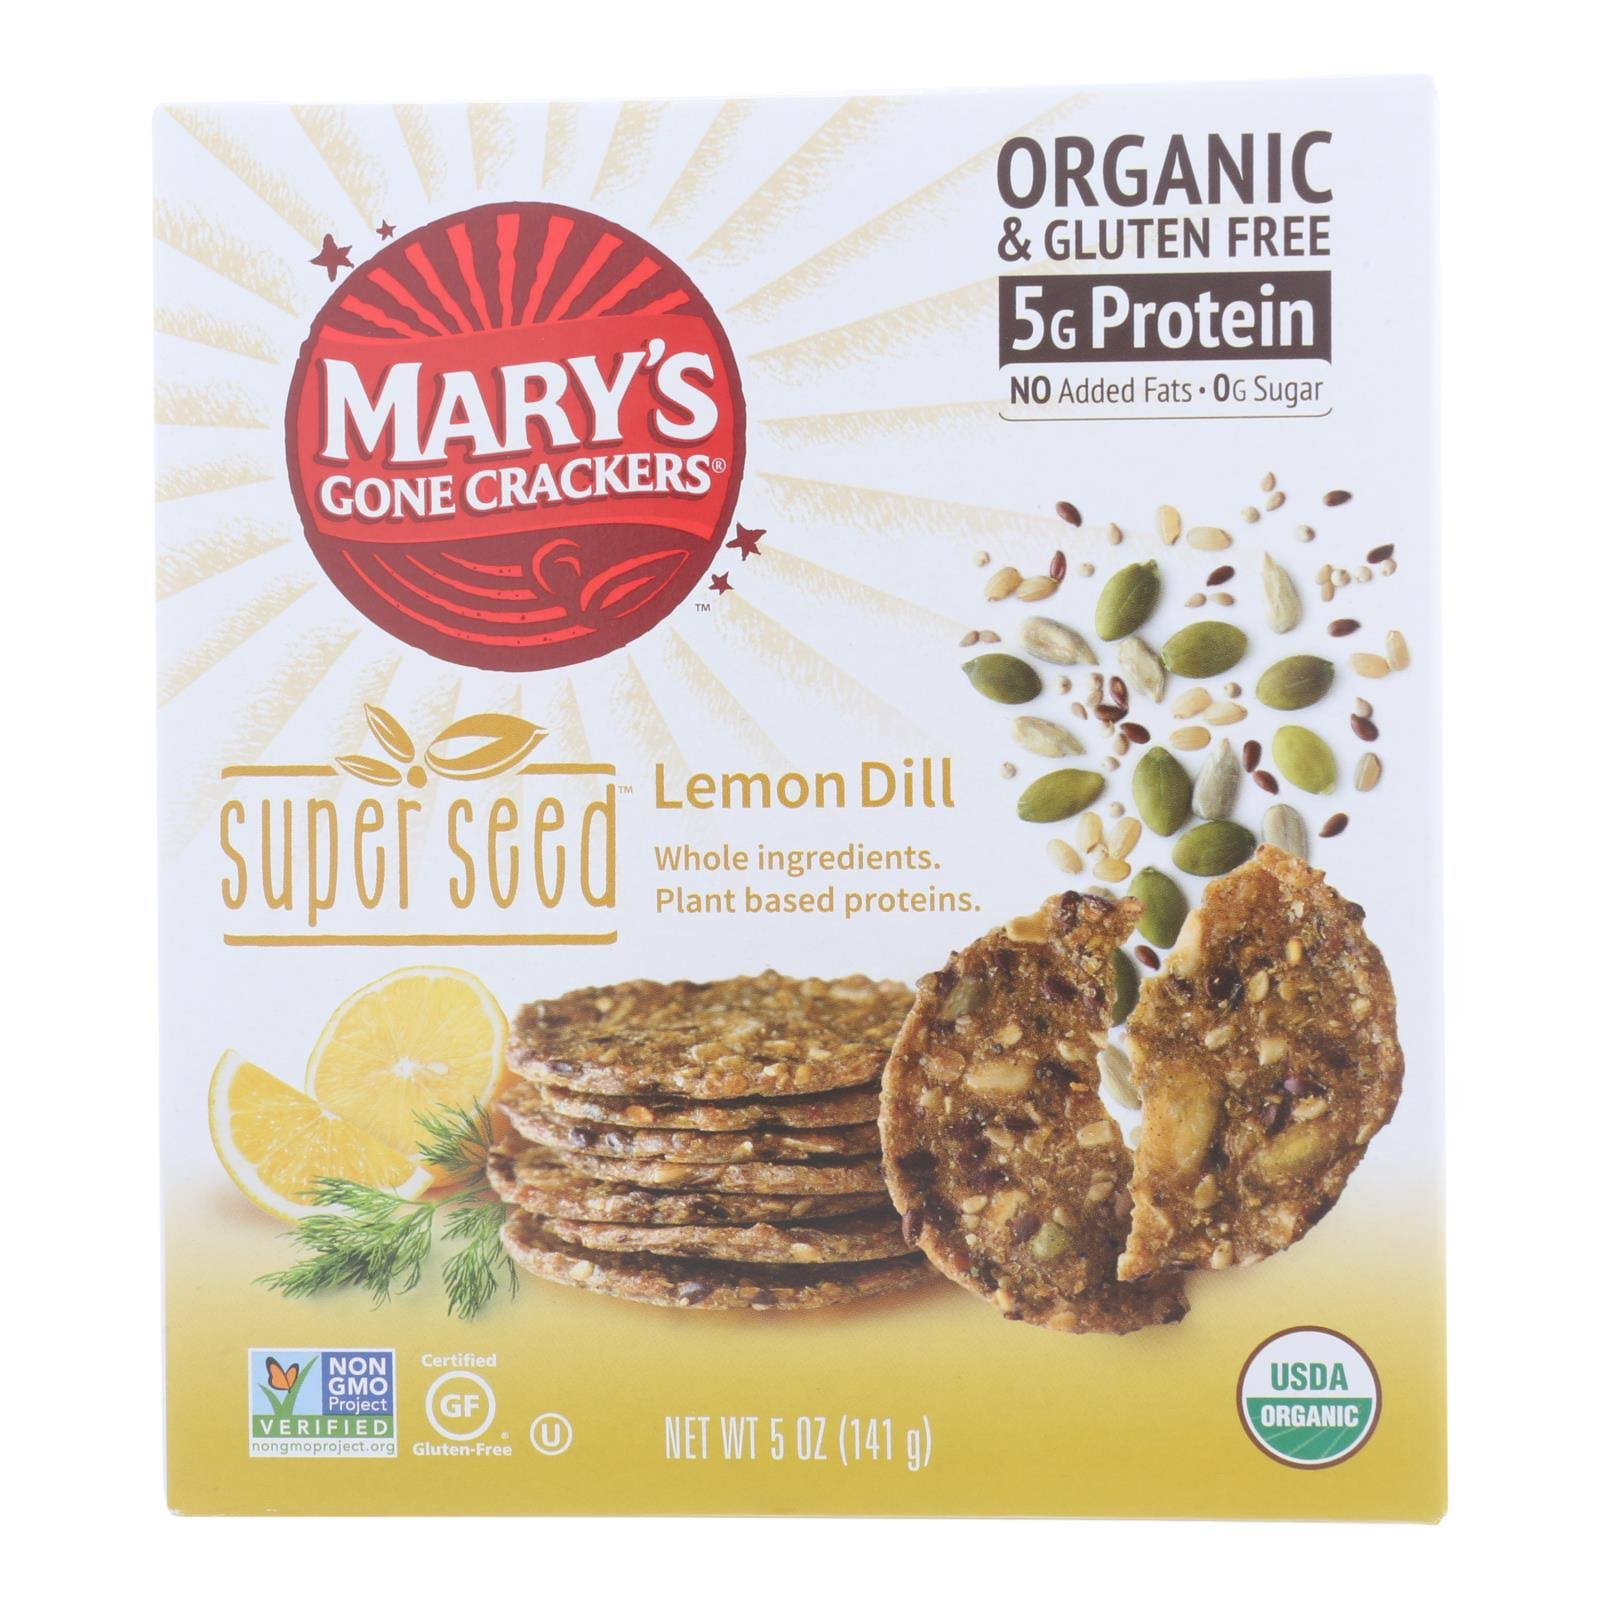 Mary's Gone Crackers Super Seed Lemon Dill Crackers, 5 oz